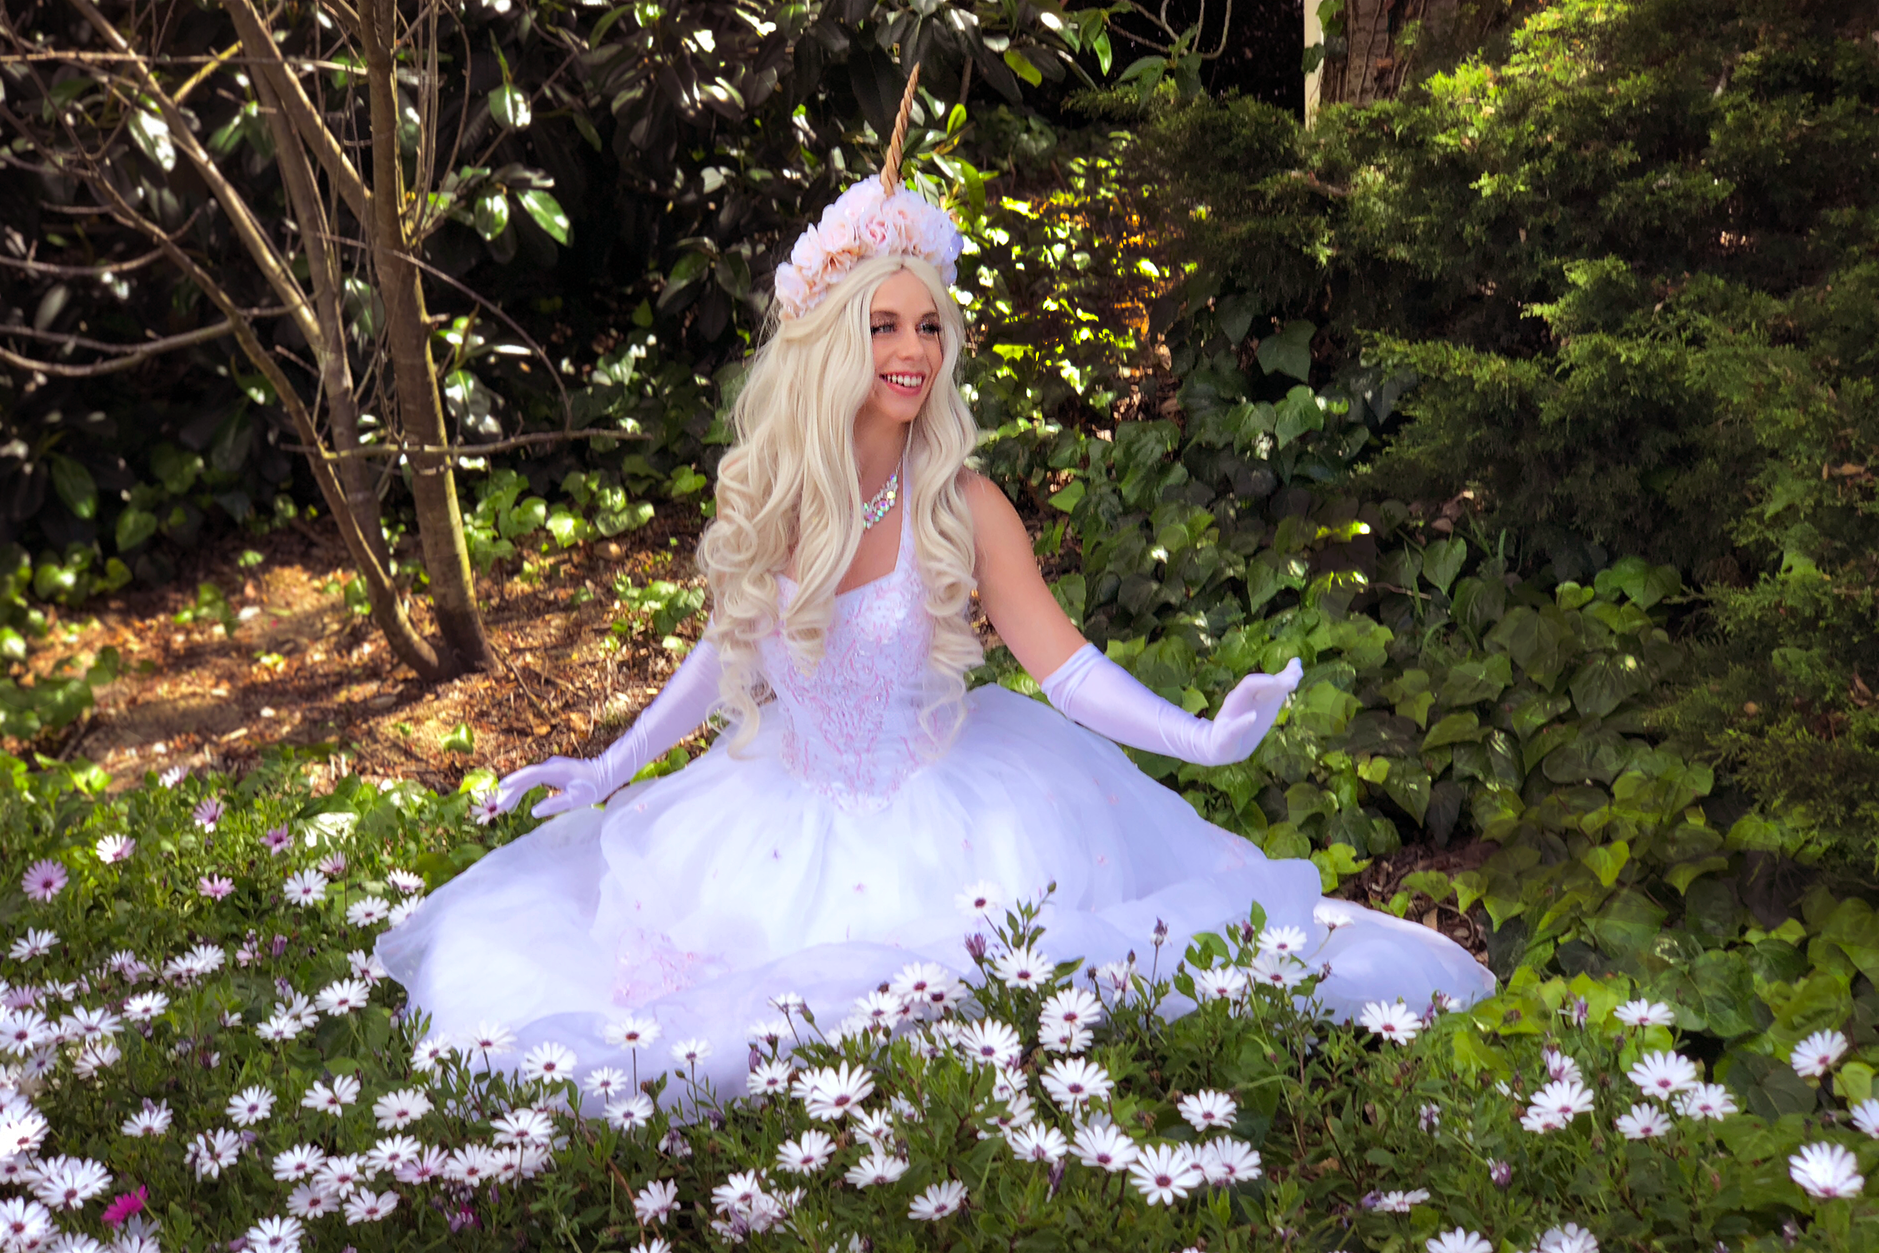 The  Unicorn Princess  (HUMAN) character is a stunning budget-friendly actress alternative to our real live unicorns or can be booked with a real unicorn to entertain the children waiting for lines! Click on her image to learn more!